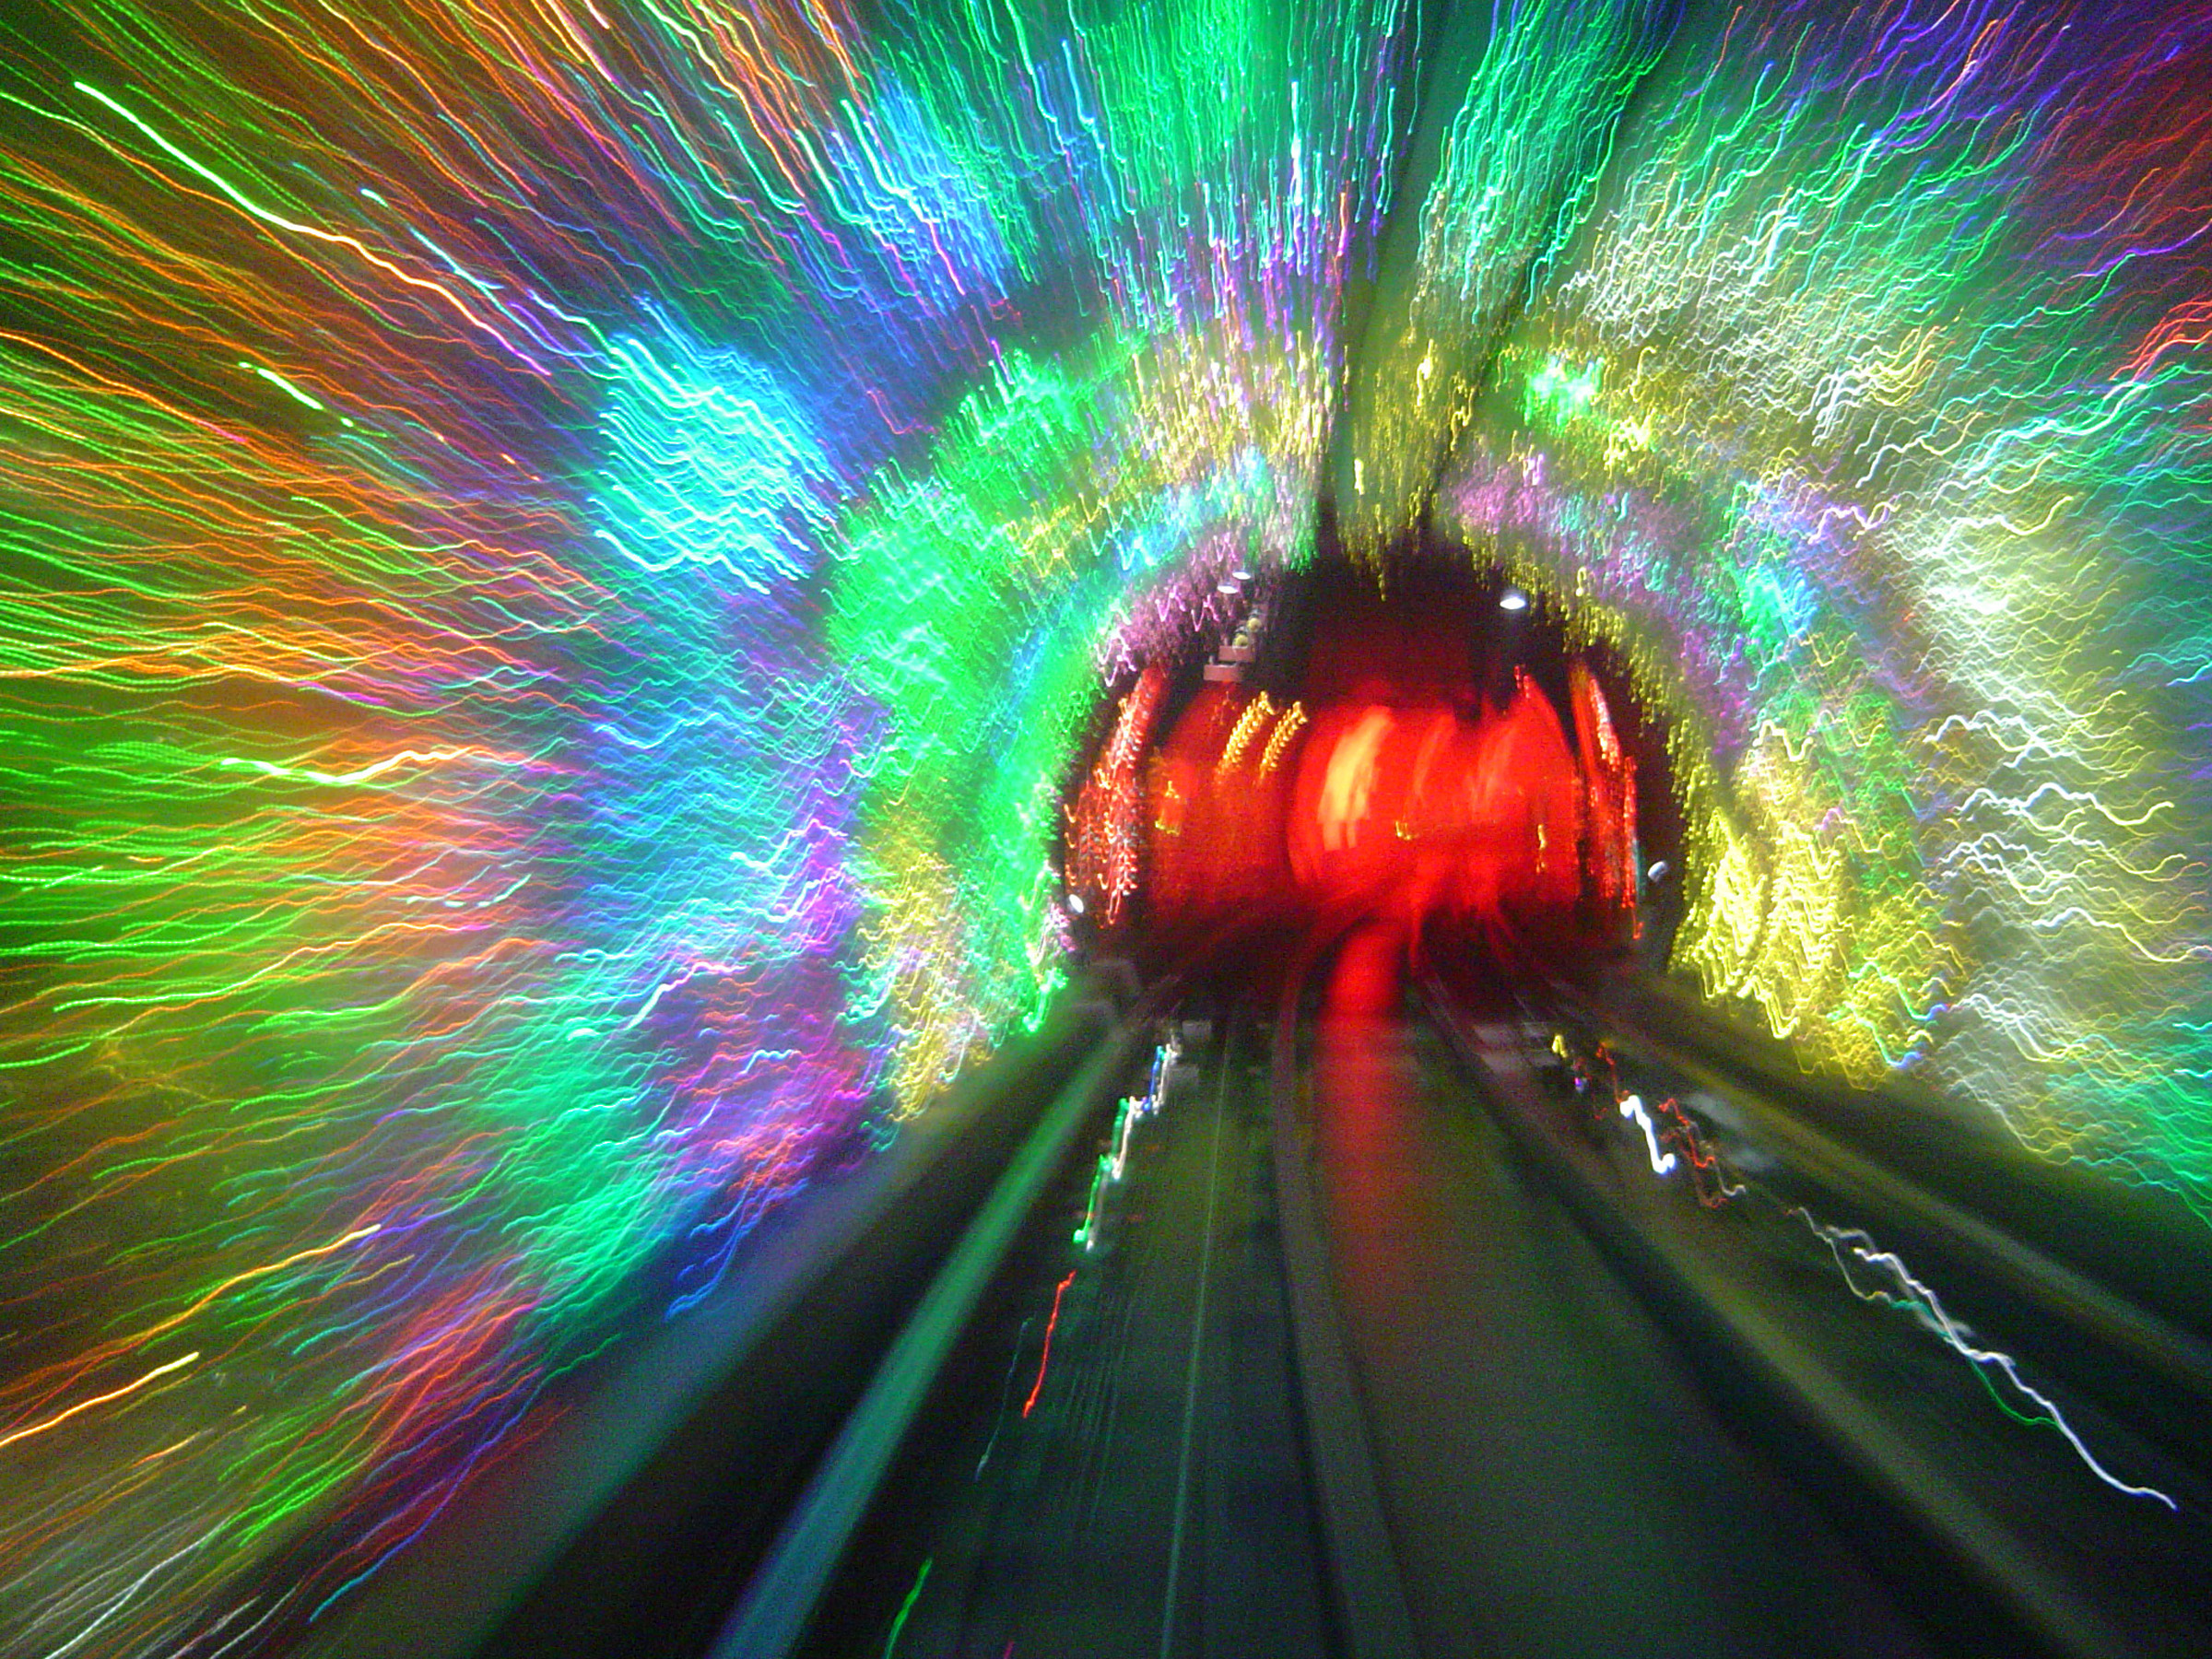 Colorful motion blur of a subway tunnel with red lights at the end